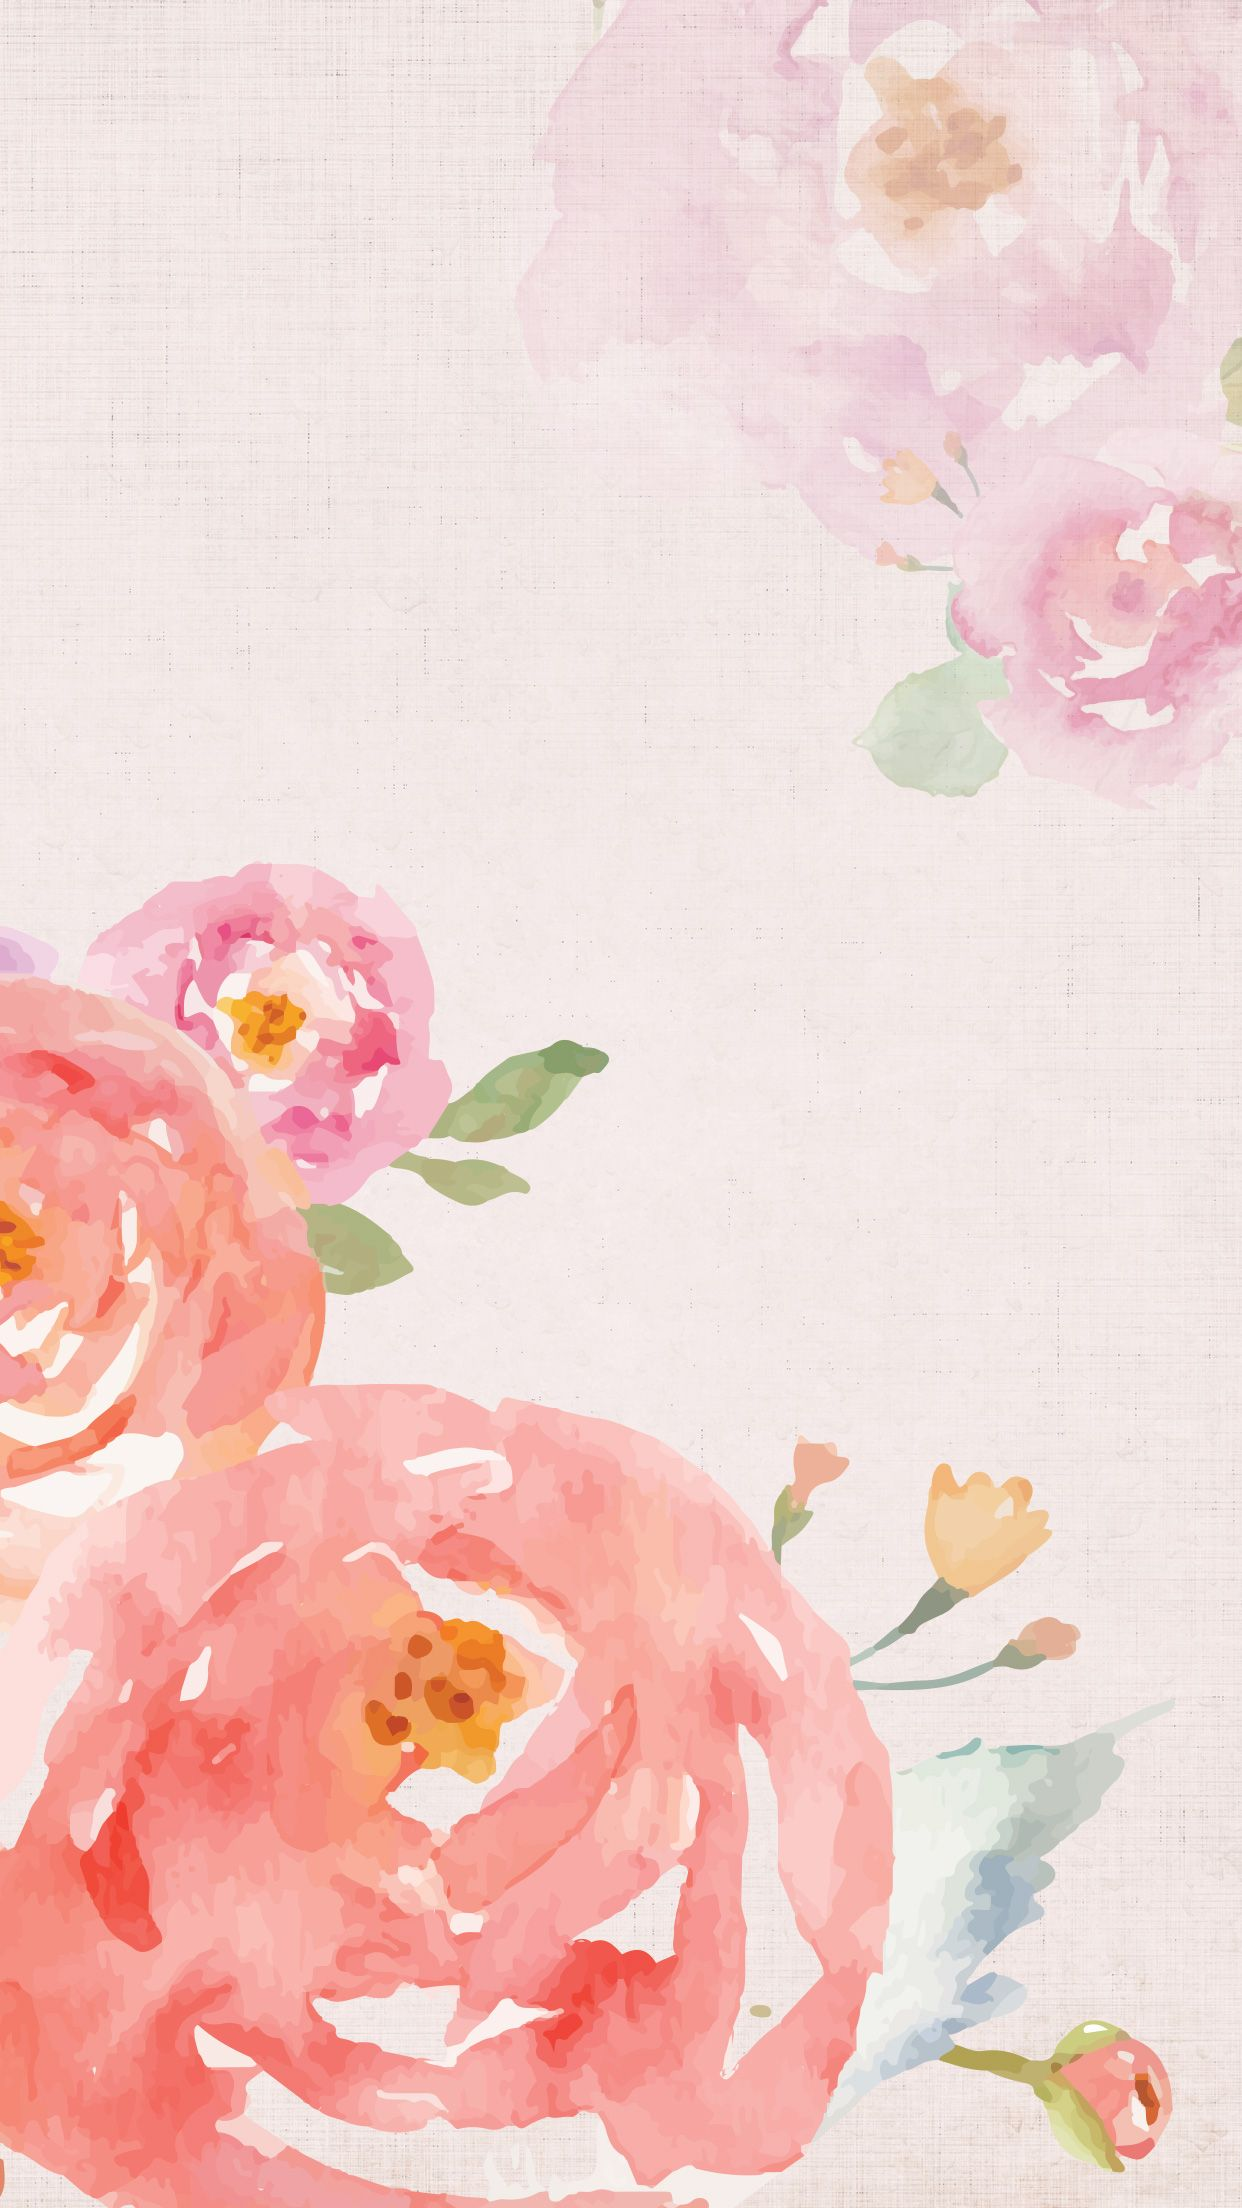 Floral Pink Roe Phone Background Watercolor Wallpaper Iphone